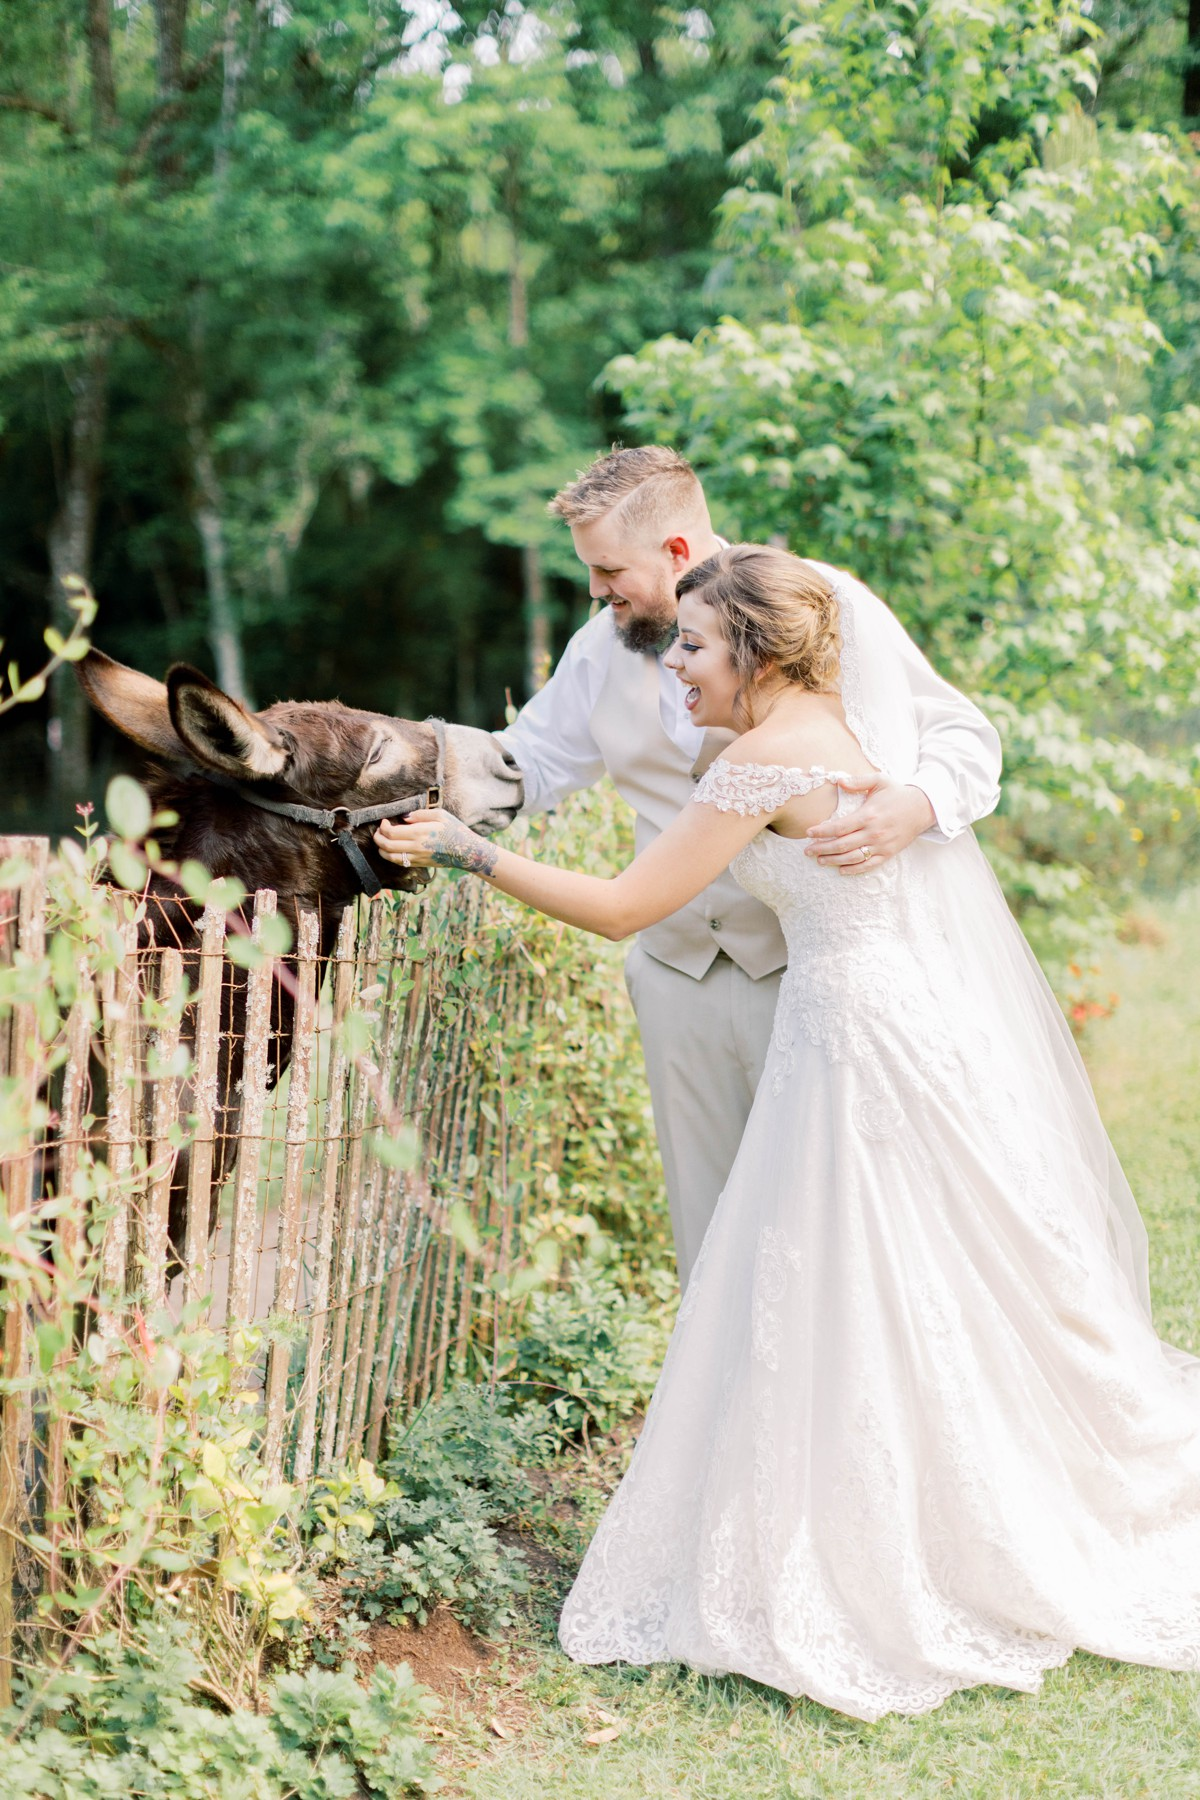 Bressler-Wedding-Preview-Tuckers-Farmhouse-Jacksonville-Wedding-Photographer-Chantell-Rae051.jpg